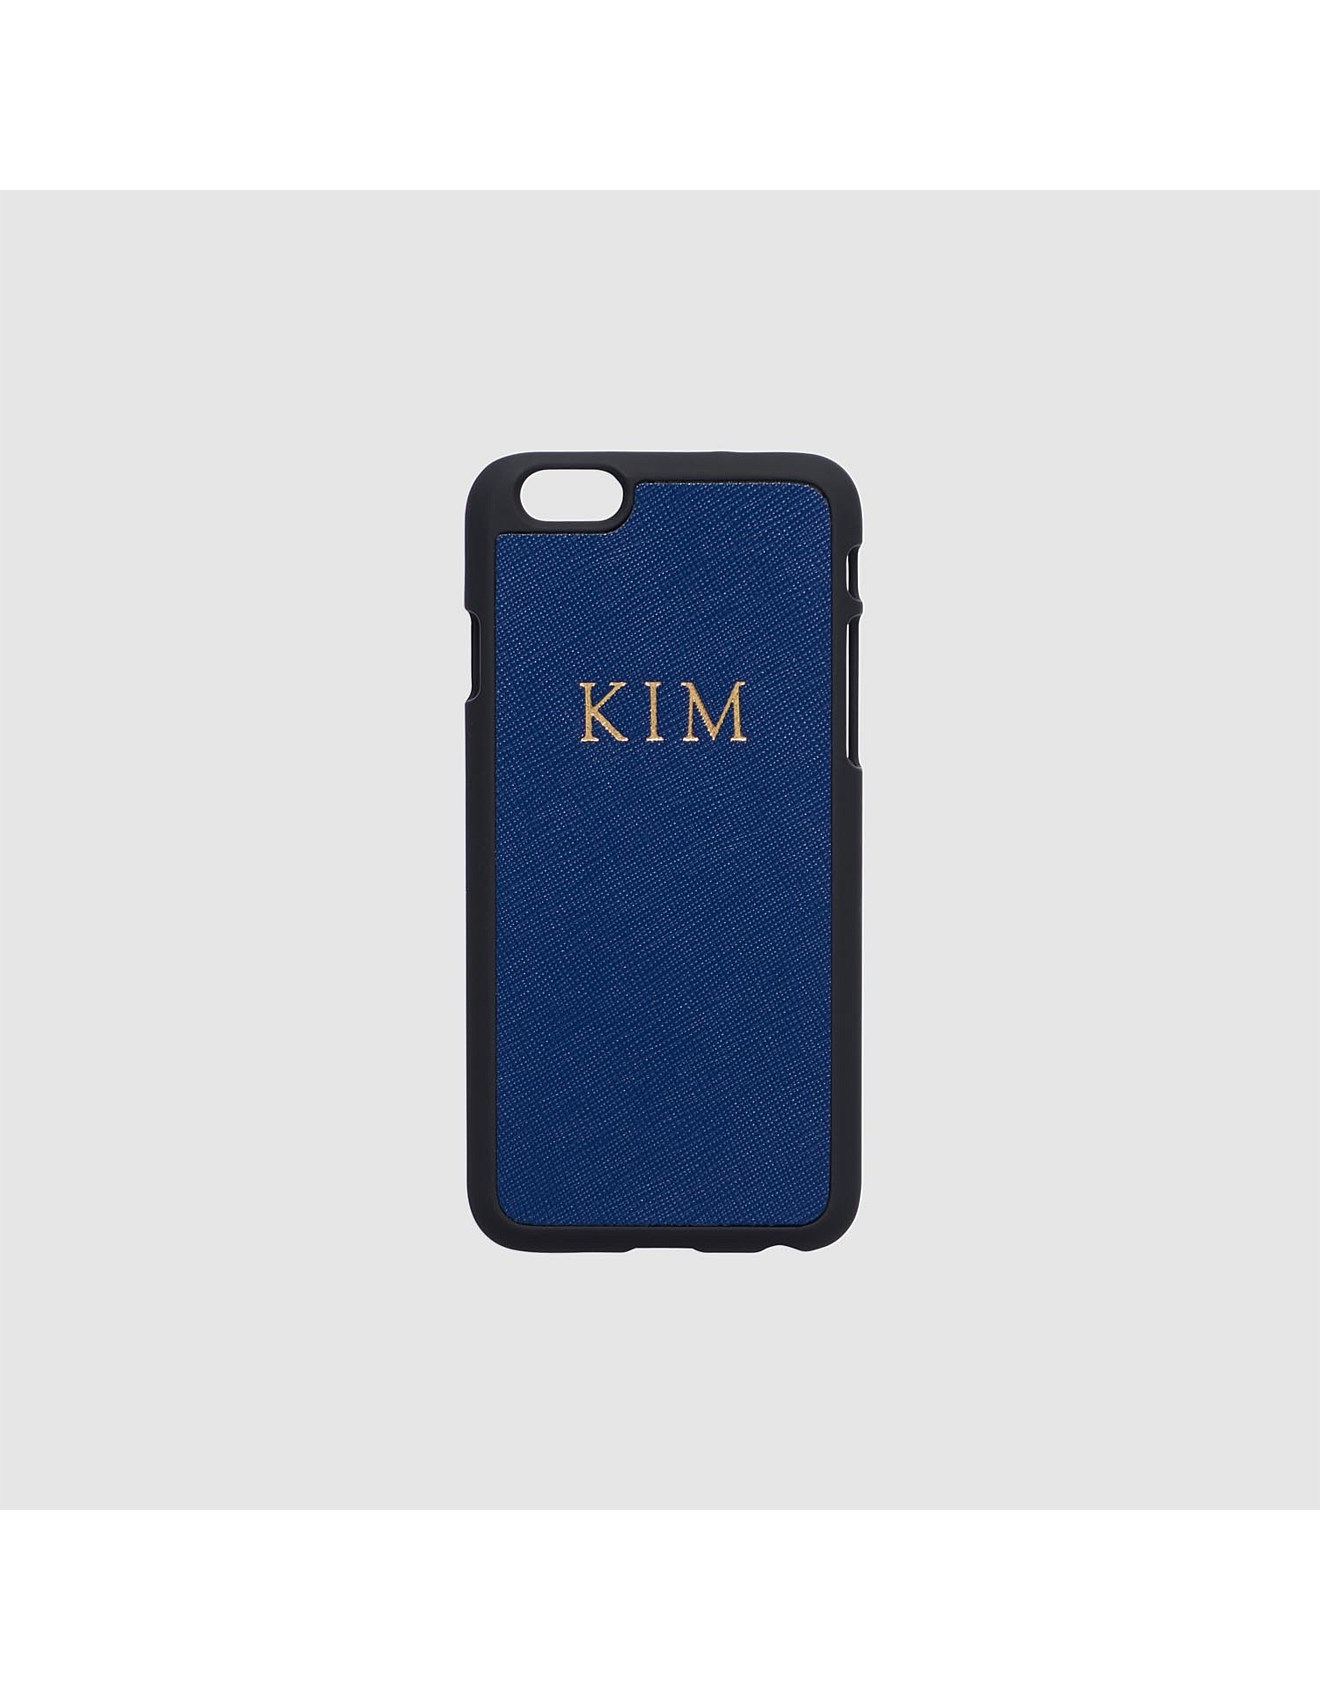 the latest 5a7be 05f11 Midnight Navy Iphone 6 / Iphone 6s Case